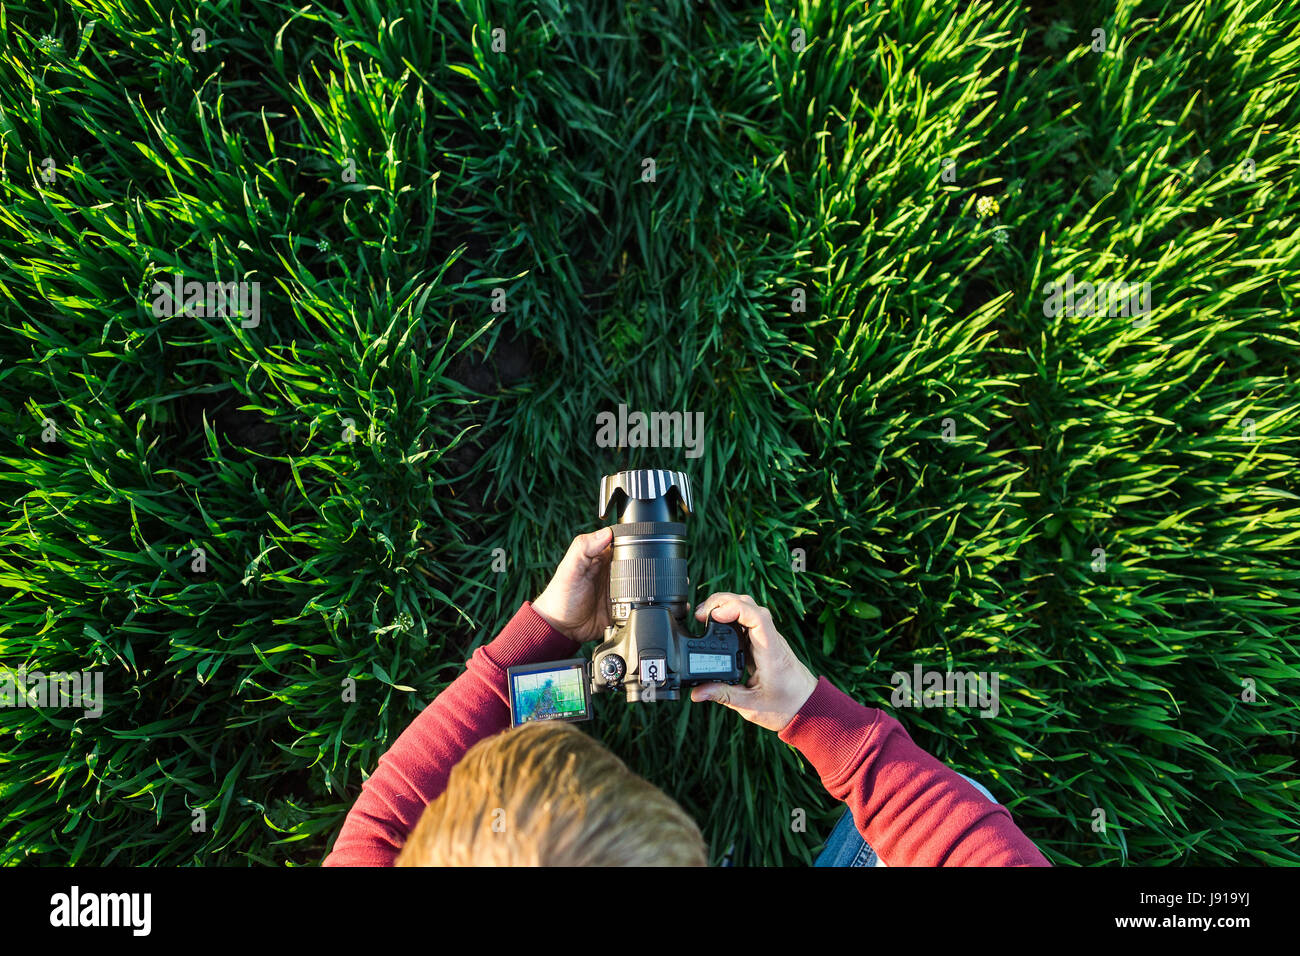 fascinating photography and process of shooting concept - male man takes photos on a digital camera with LCD display - Stock Image